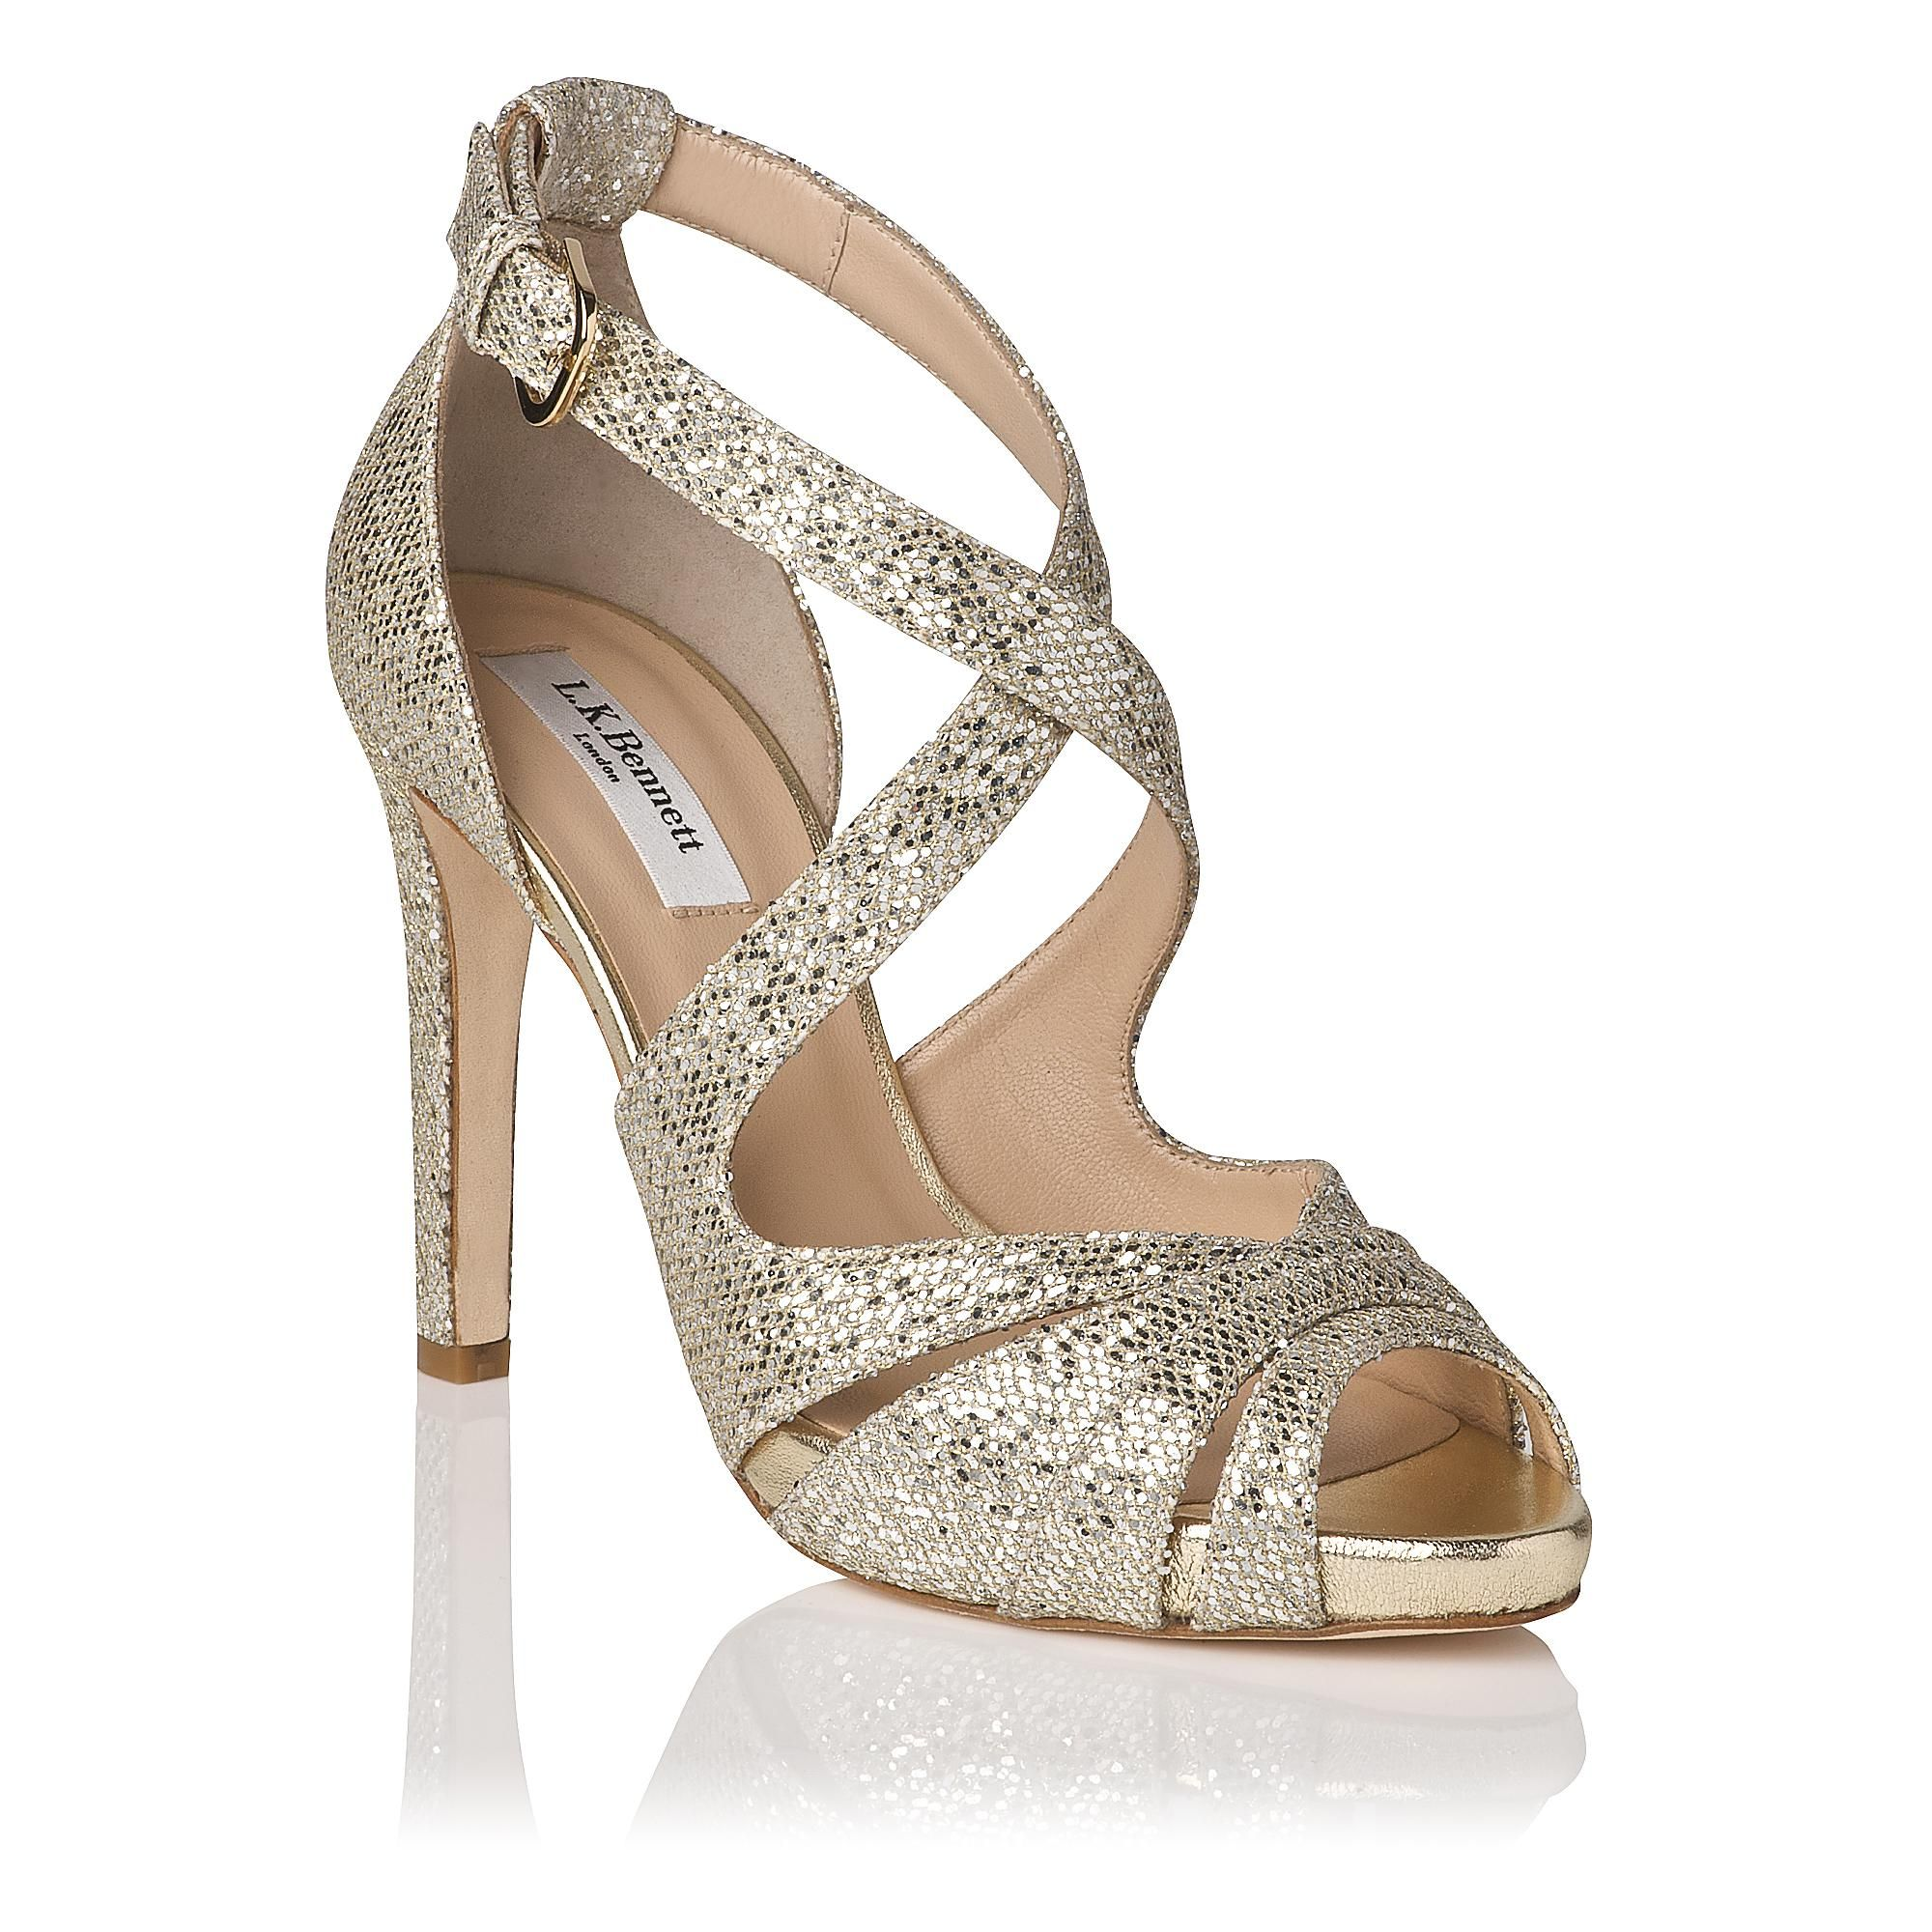 Shop Jimmy Choo Vamp Glitter Platform Sandals as seen on Duchess of  Cambridge. Copy Princess Kate's style with the best repliKate shoes for  less!